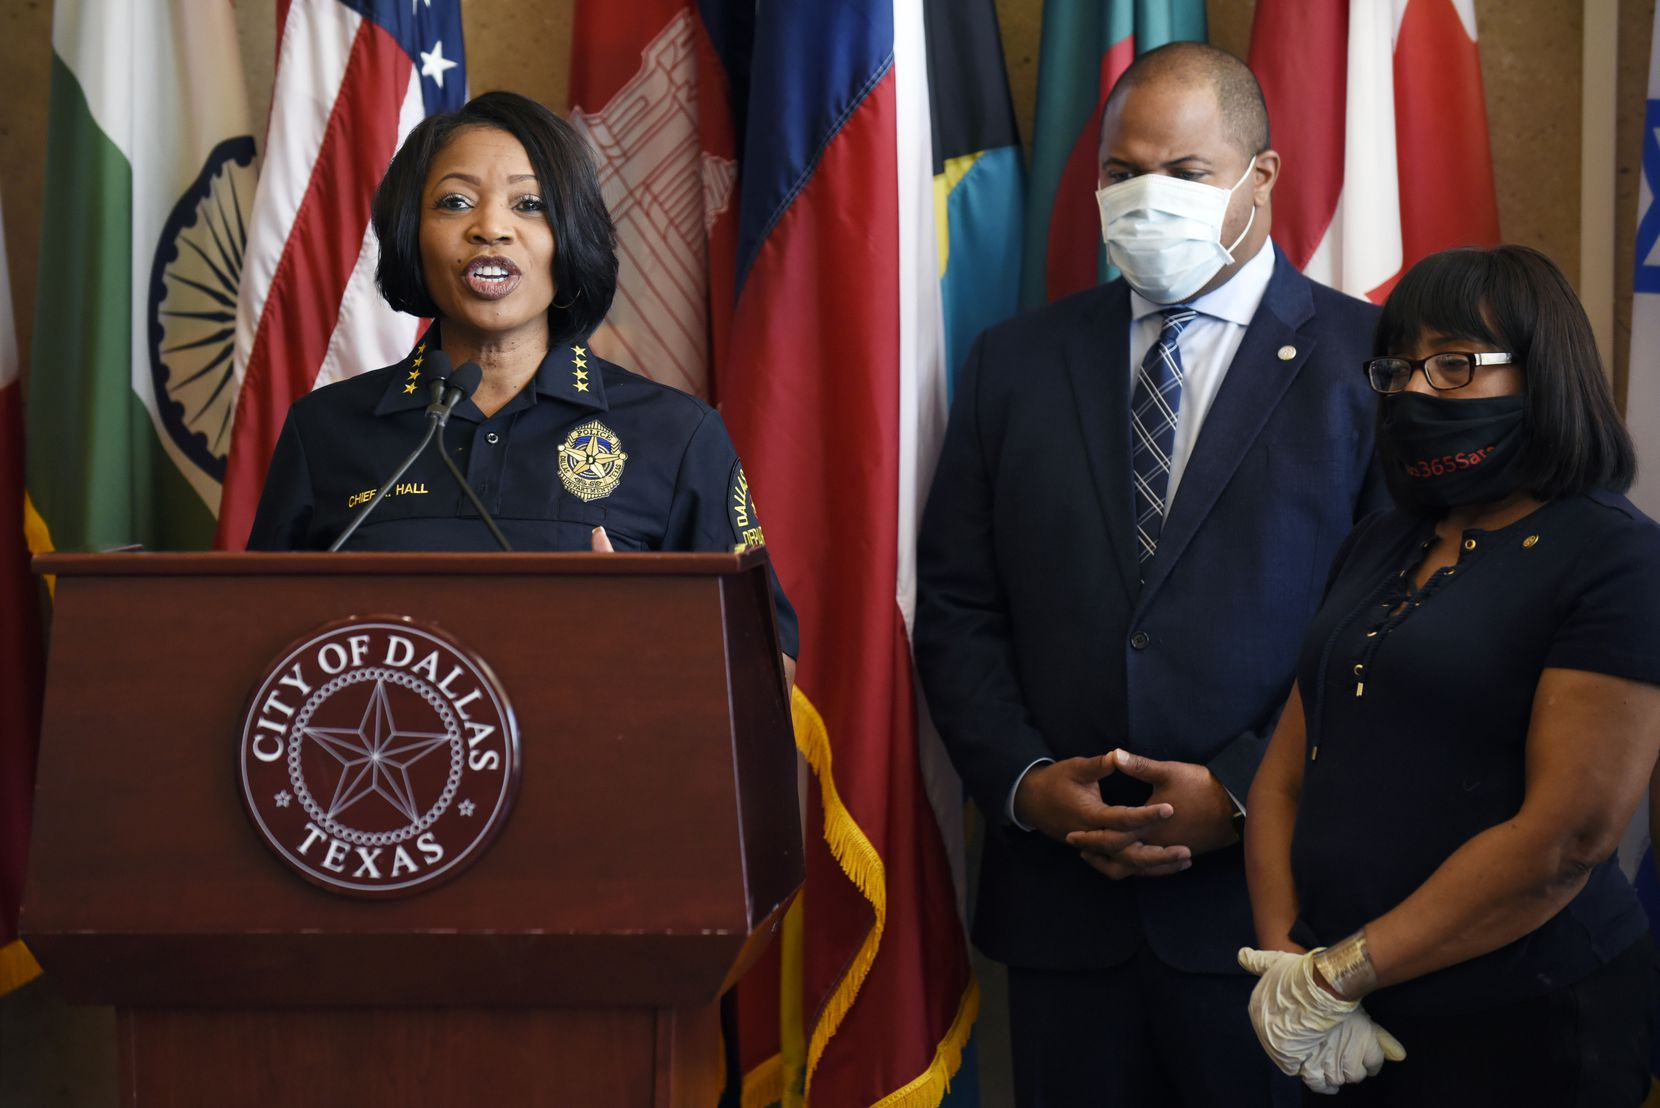 Dallas Chief of Police Renee Hall, left, and Dallas Mayor Eric Johnson, right, conduct a press conference in May, addressing the protests over the killing of George Floyd. Johnson is a staunch defender of the police department, opposing any cuts to its budget.